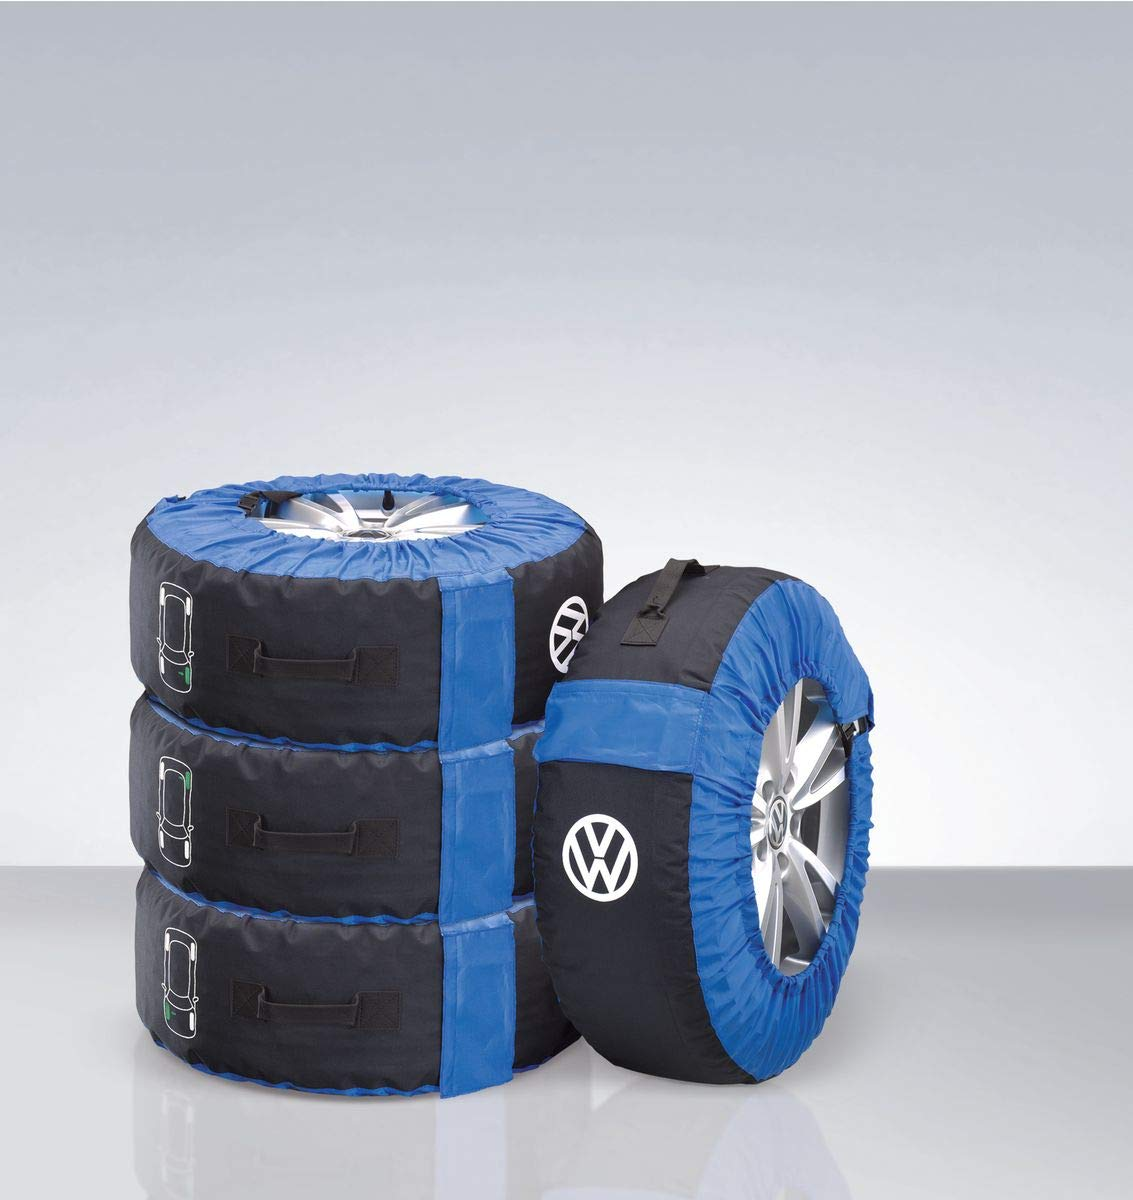 Volkswagen, 000073900E, tyre bag set, complete wheels, (up to 21 inches), bag tyre rim